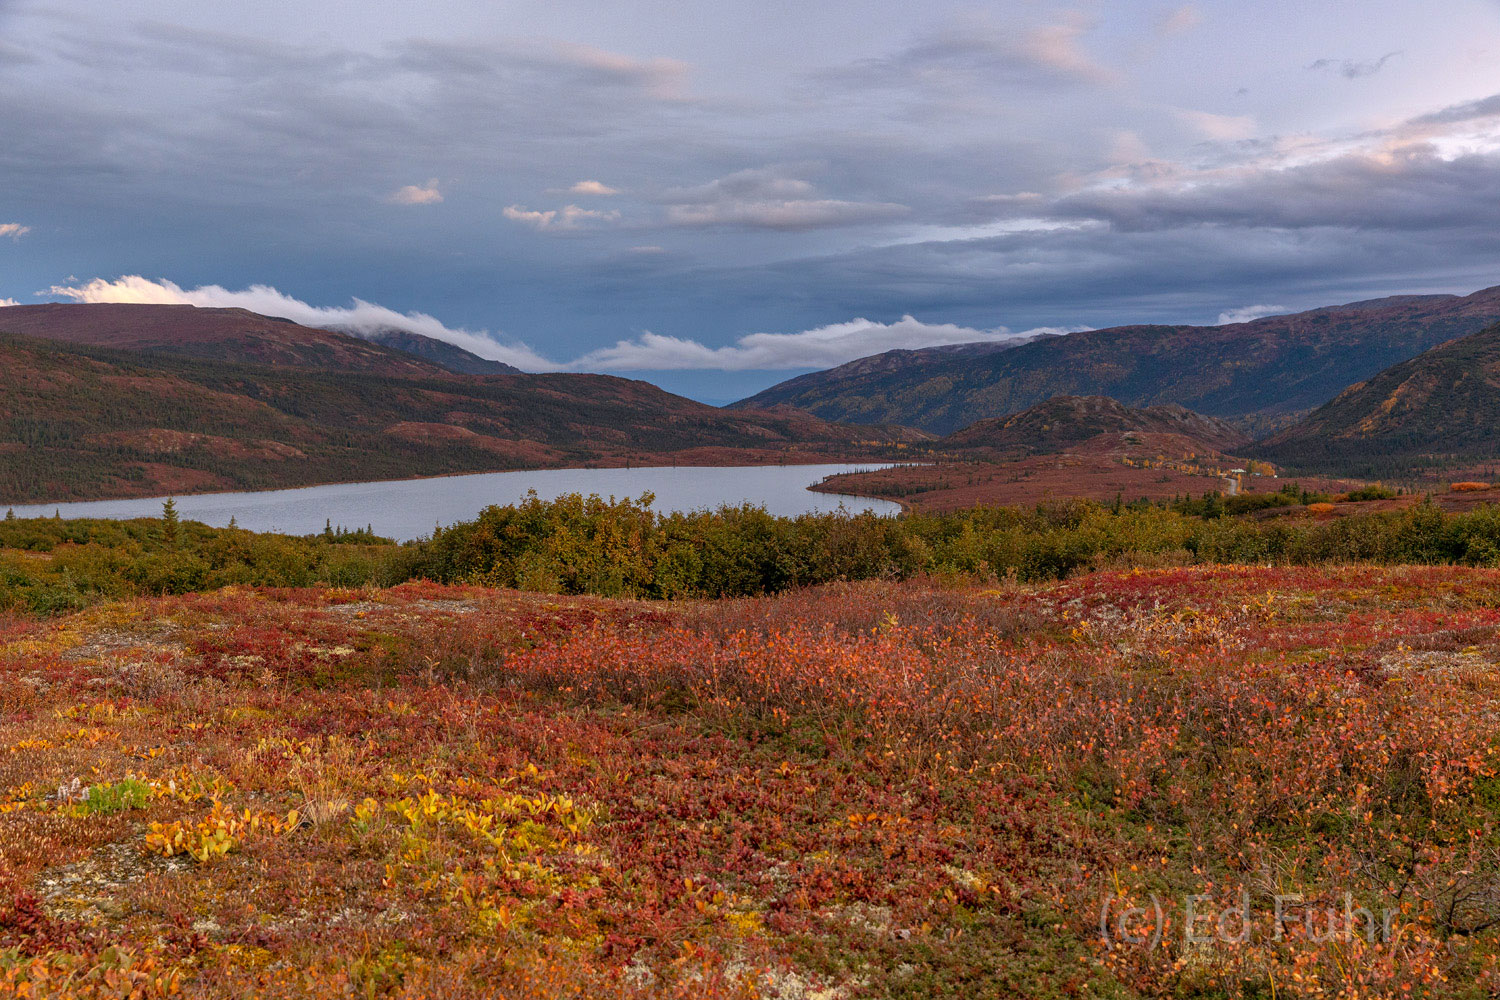 denali national park, photography, images, autumn, fall, mountains,, photo